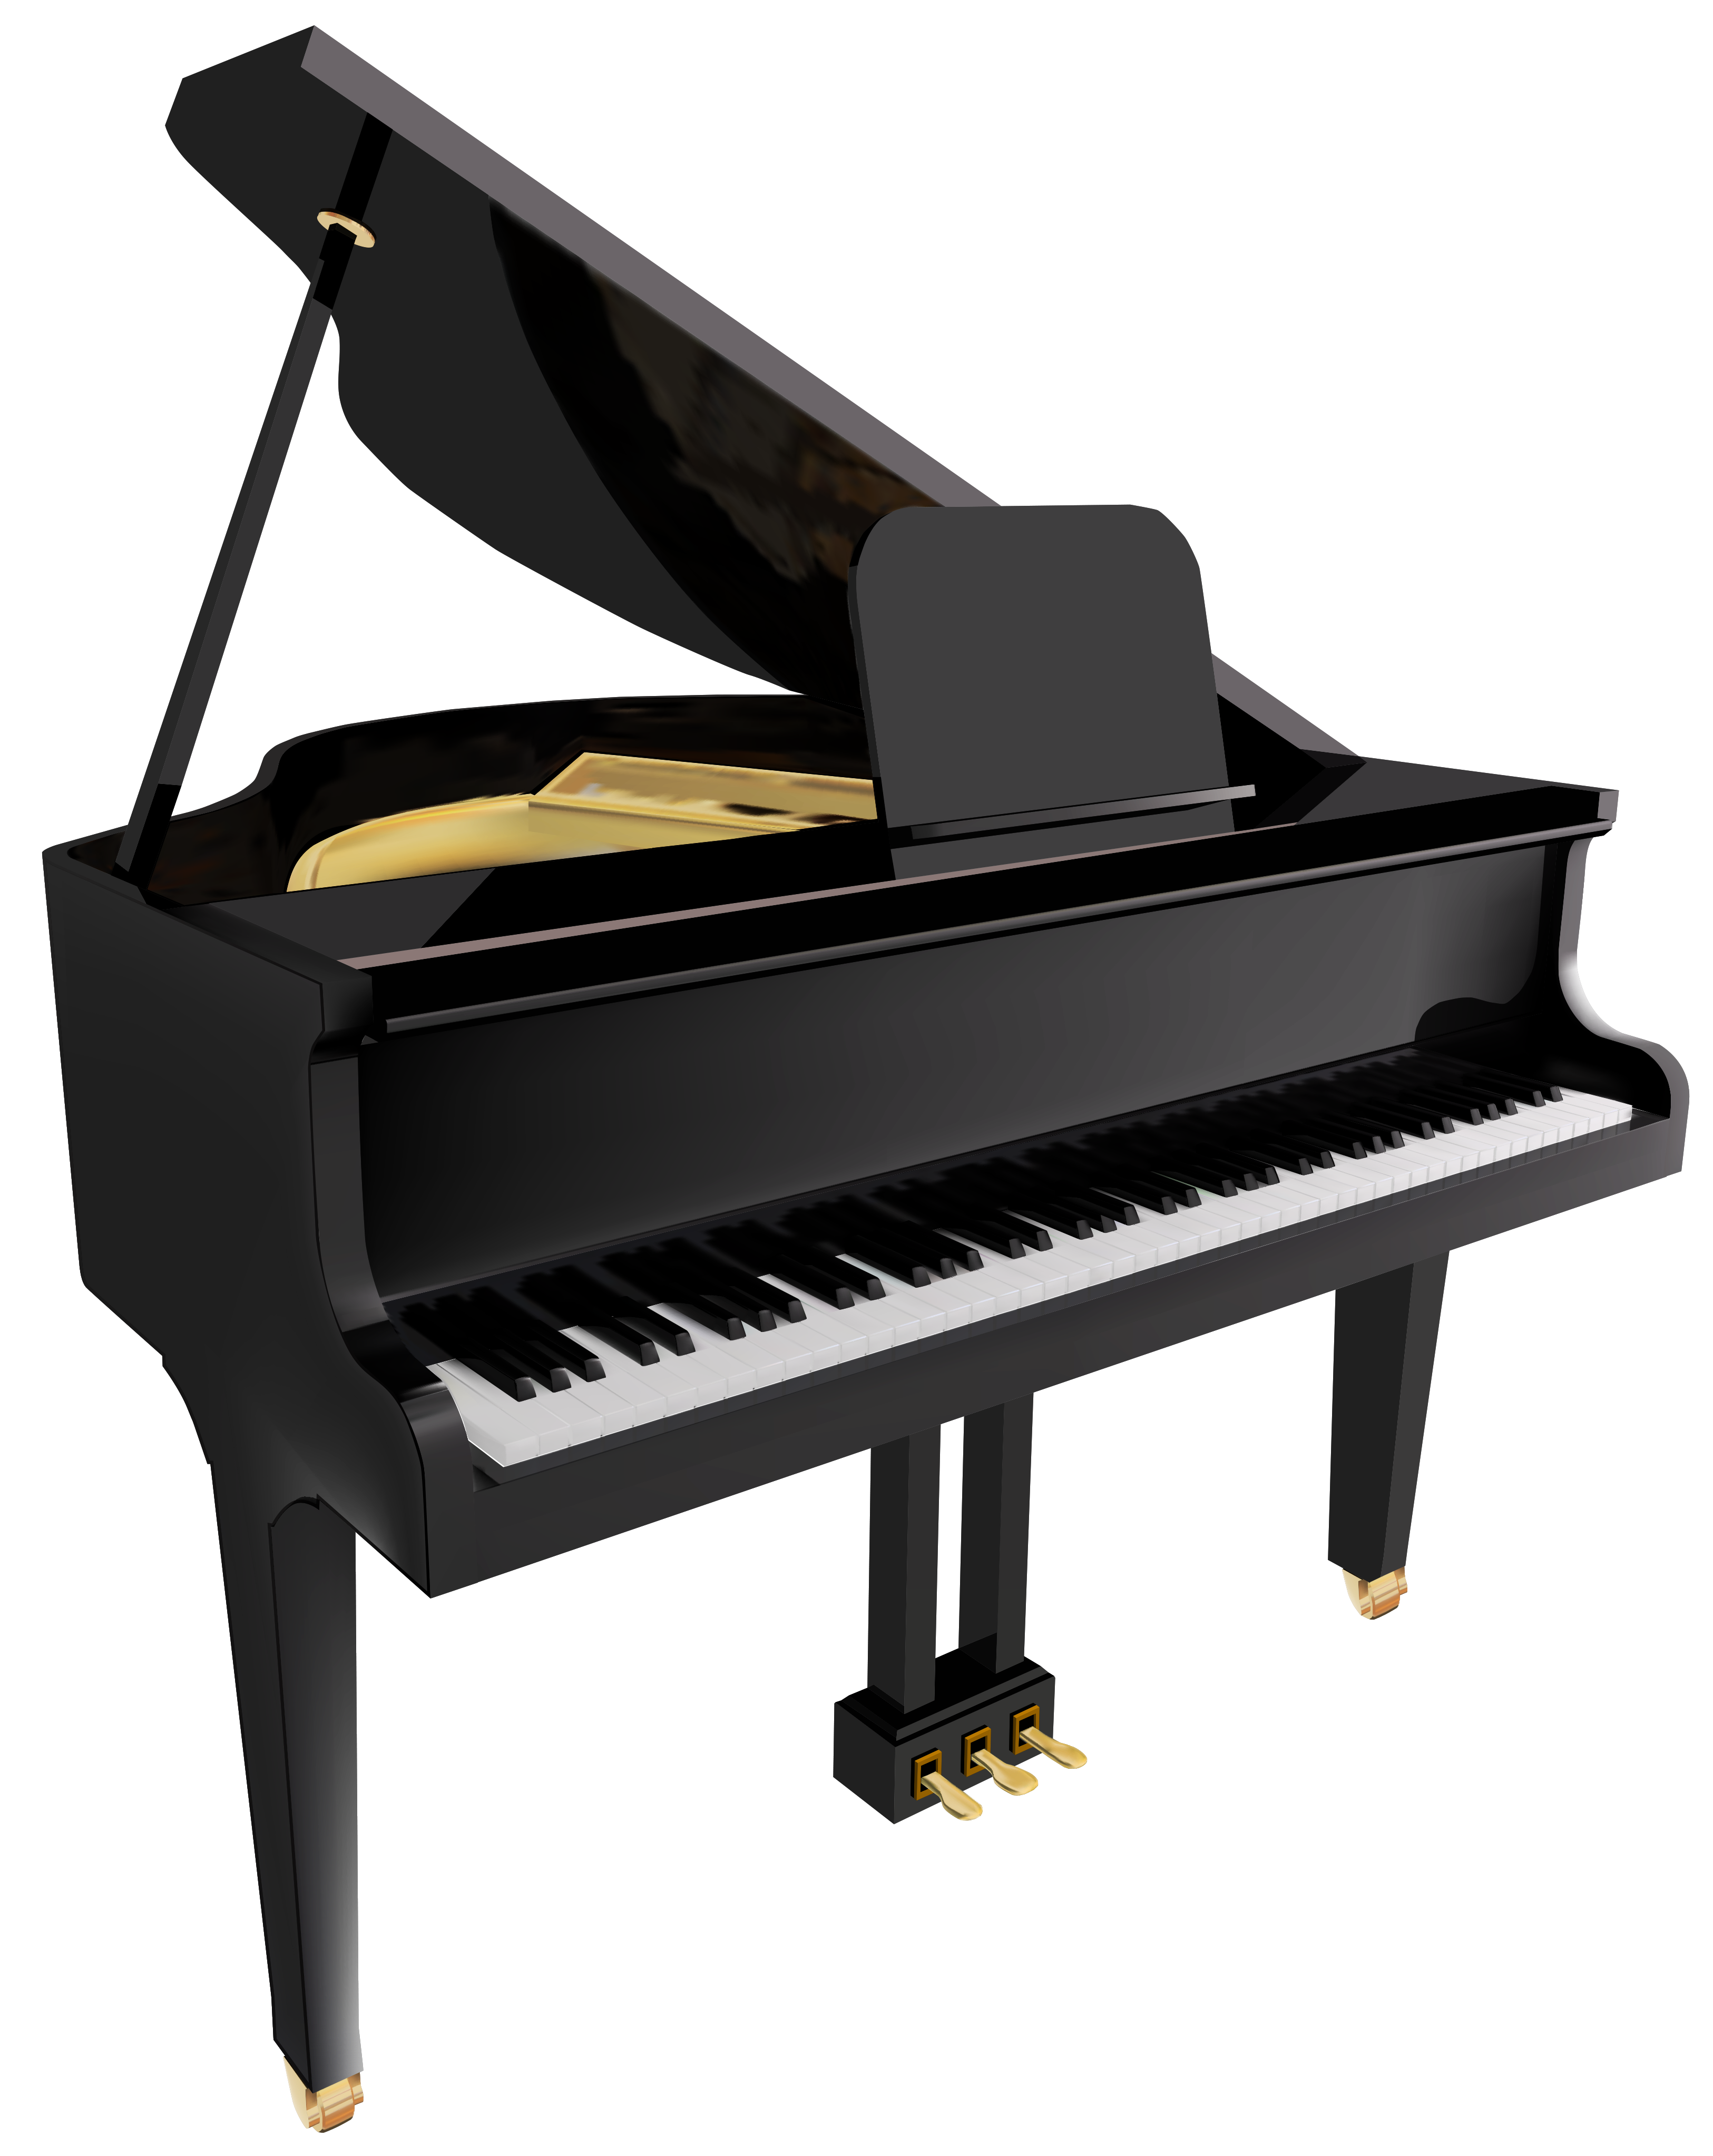 Furniture png images free download for Sito web design piano piano